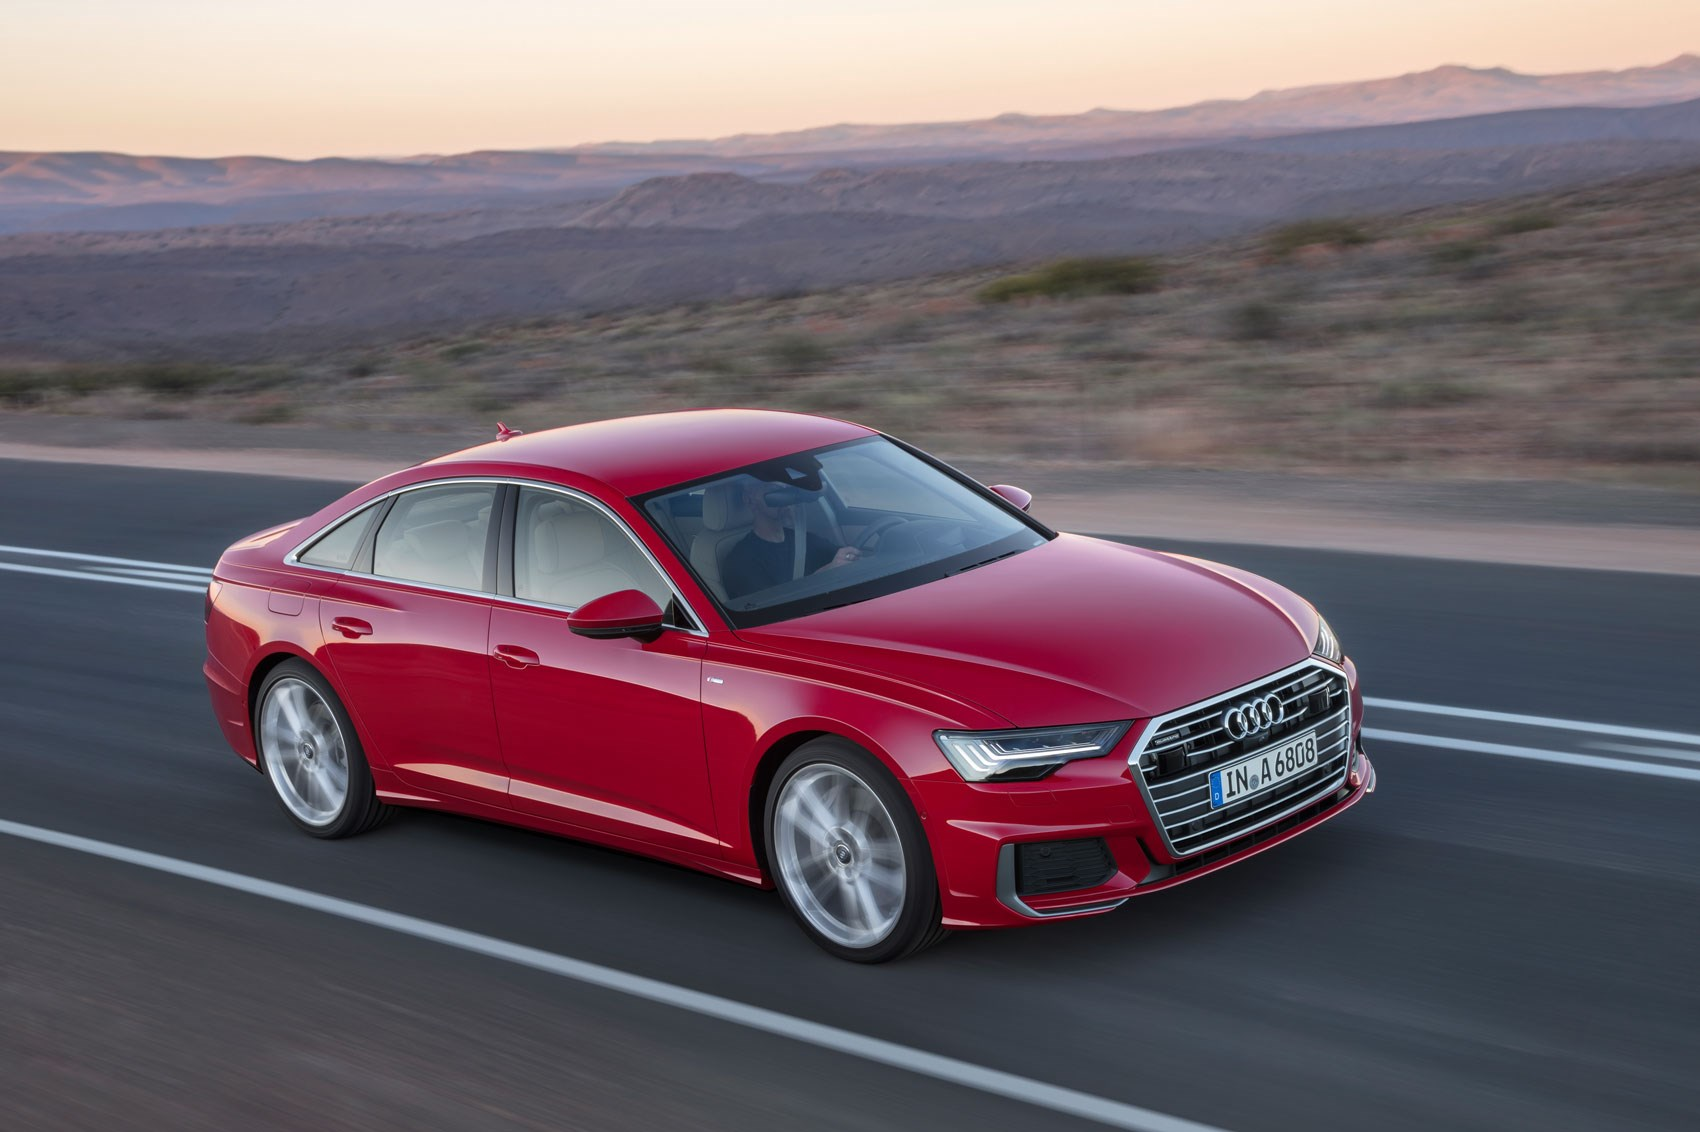 Audi A6 saloon 2018 interior price and release date by CAR Magazine